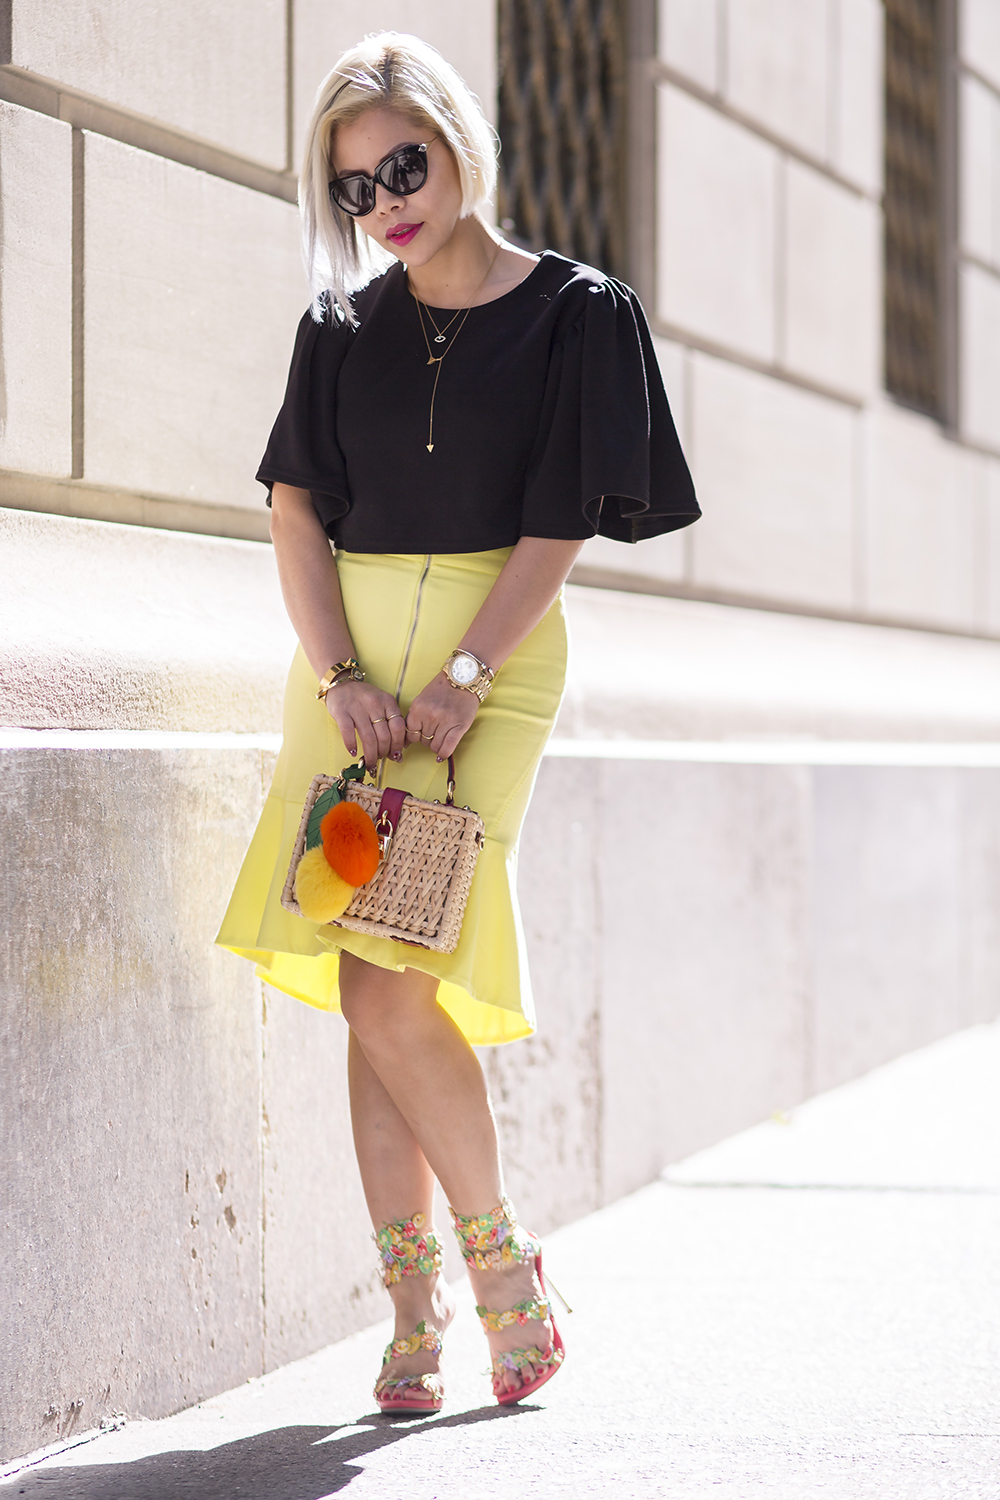 New York Fashion Week- Crystal Phuong streetstyle